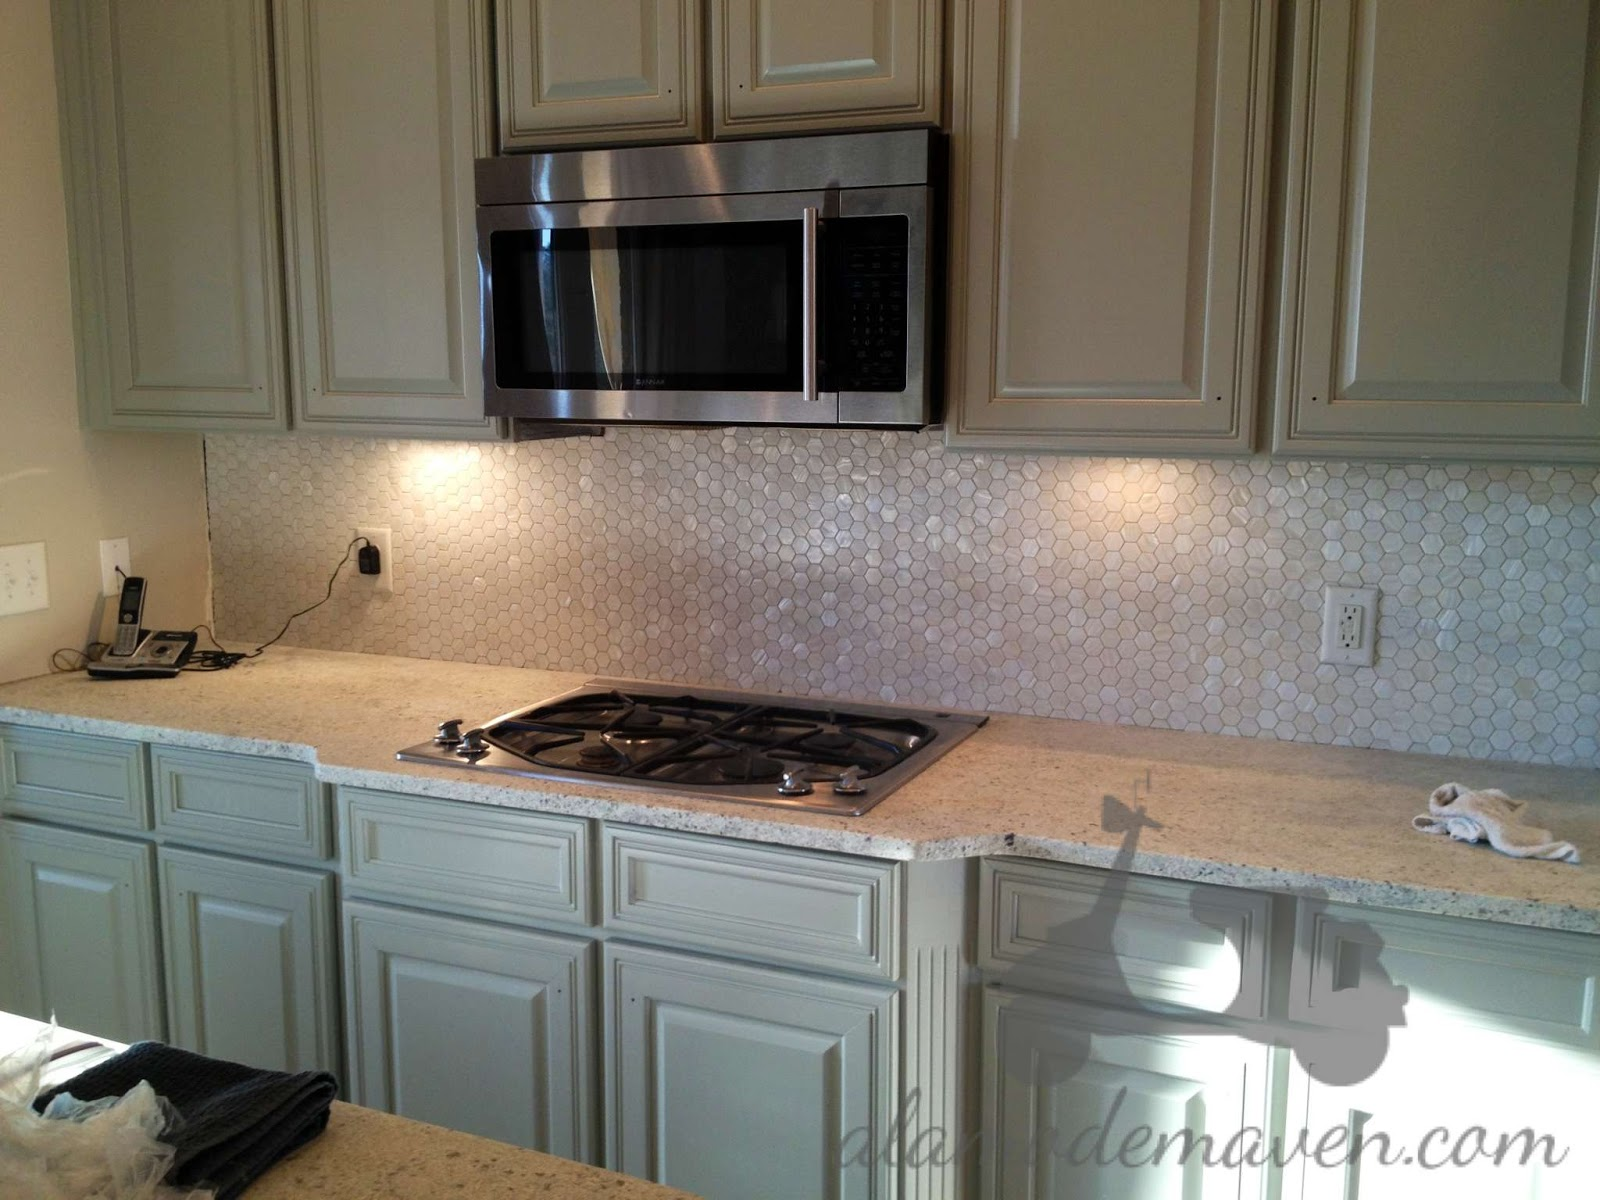 Alamode the new kitchen tile backsplash the hexagonal mother of pearl tile is from artistic tile who makes some gorgeous tile my friends i especially love their water jet designs dailygadgetfo Images